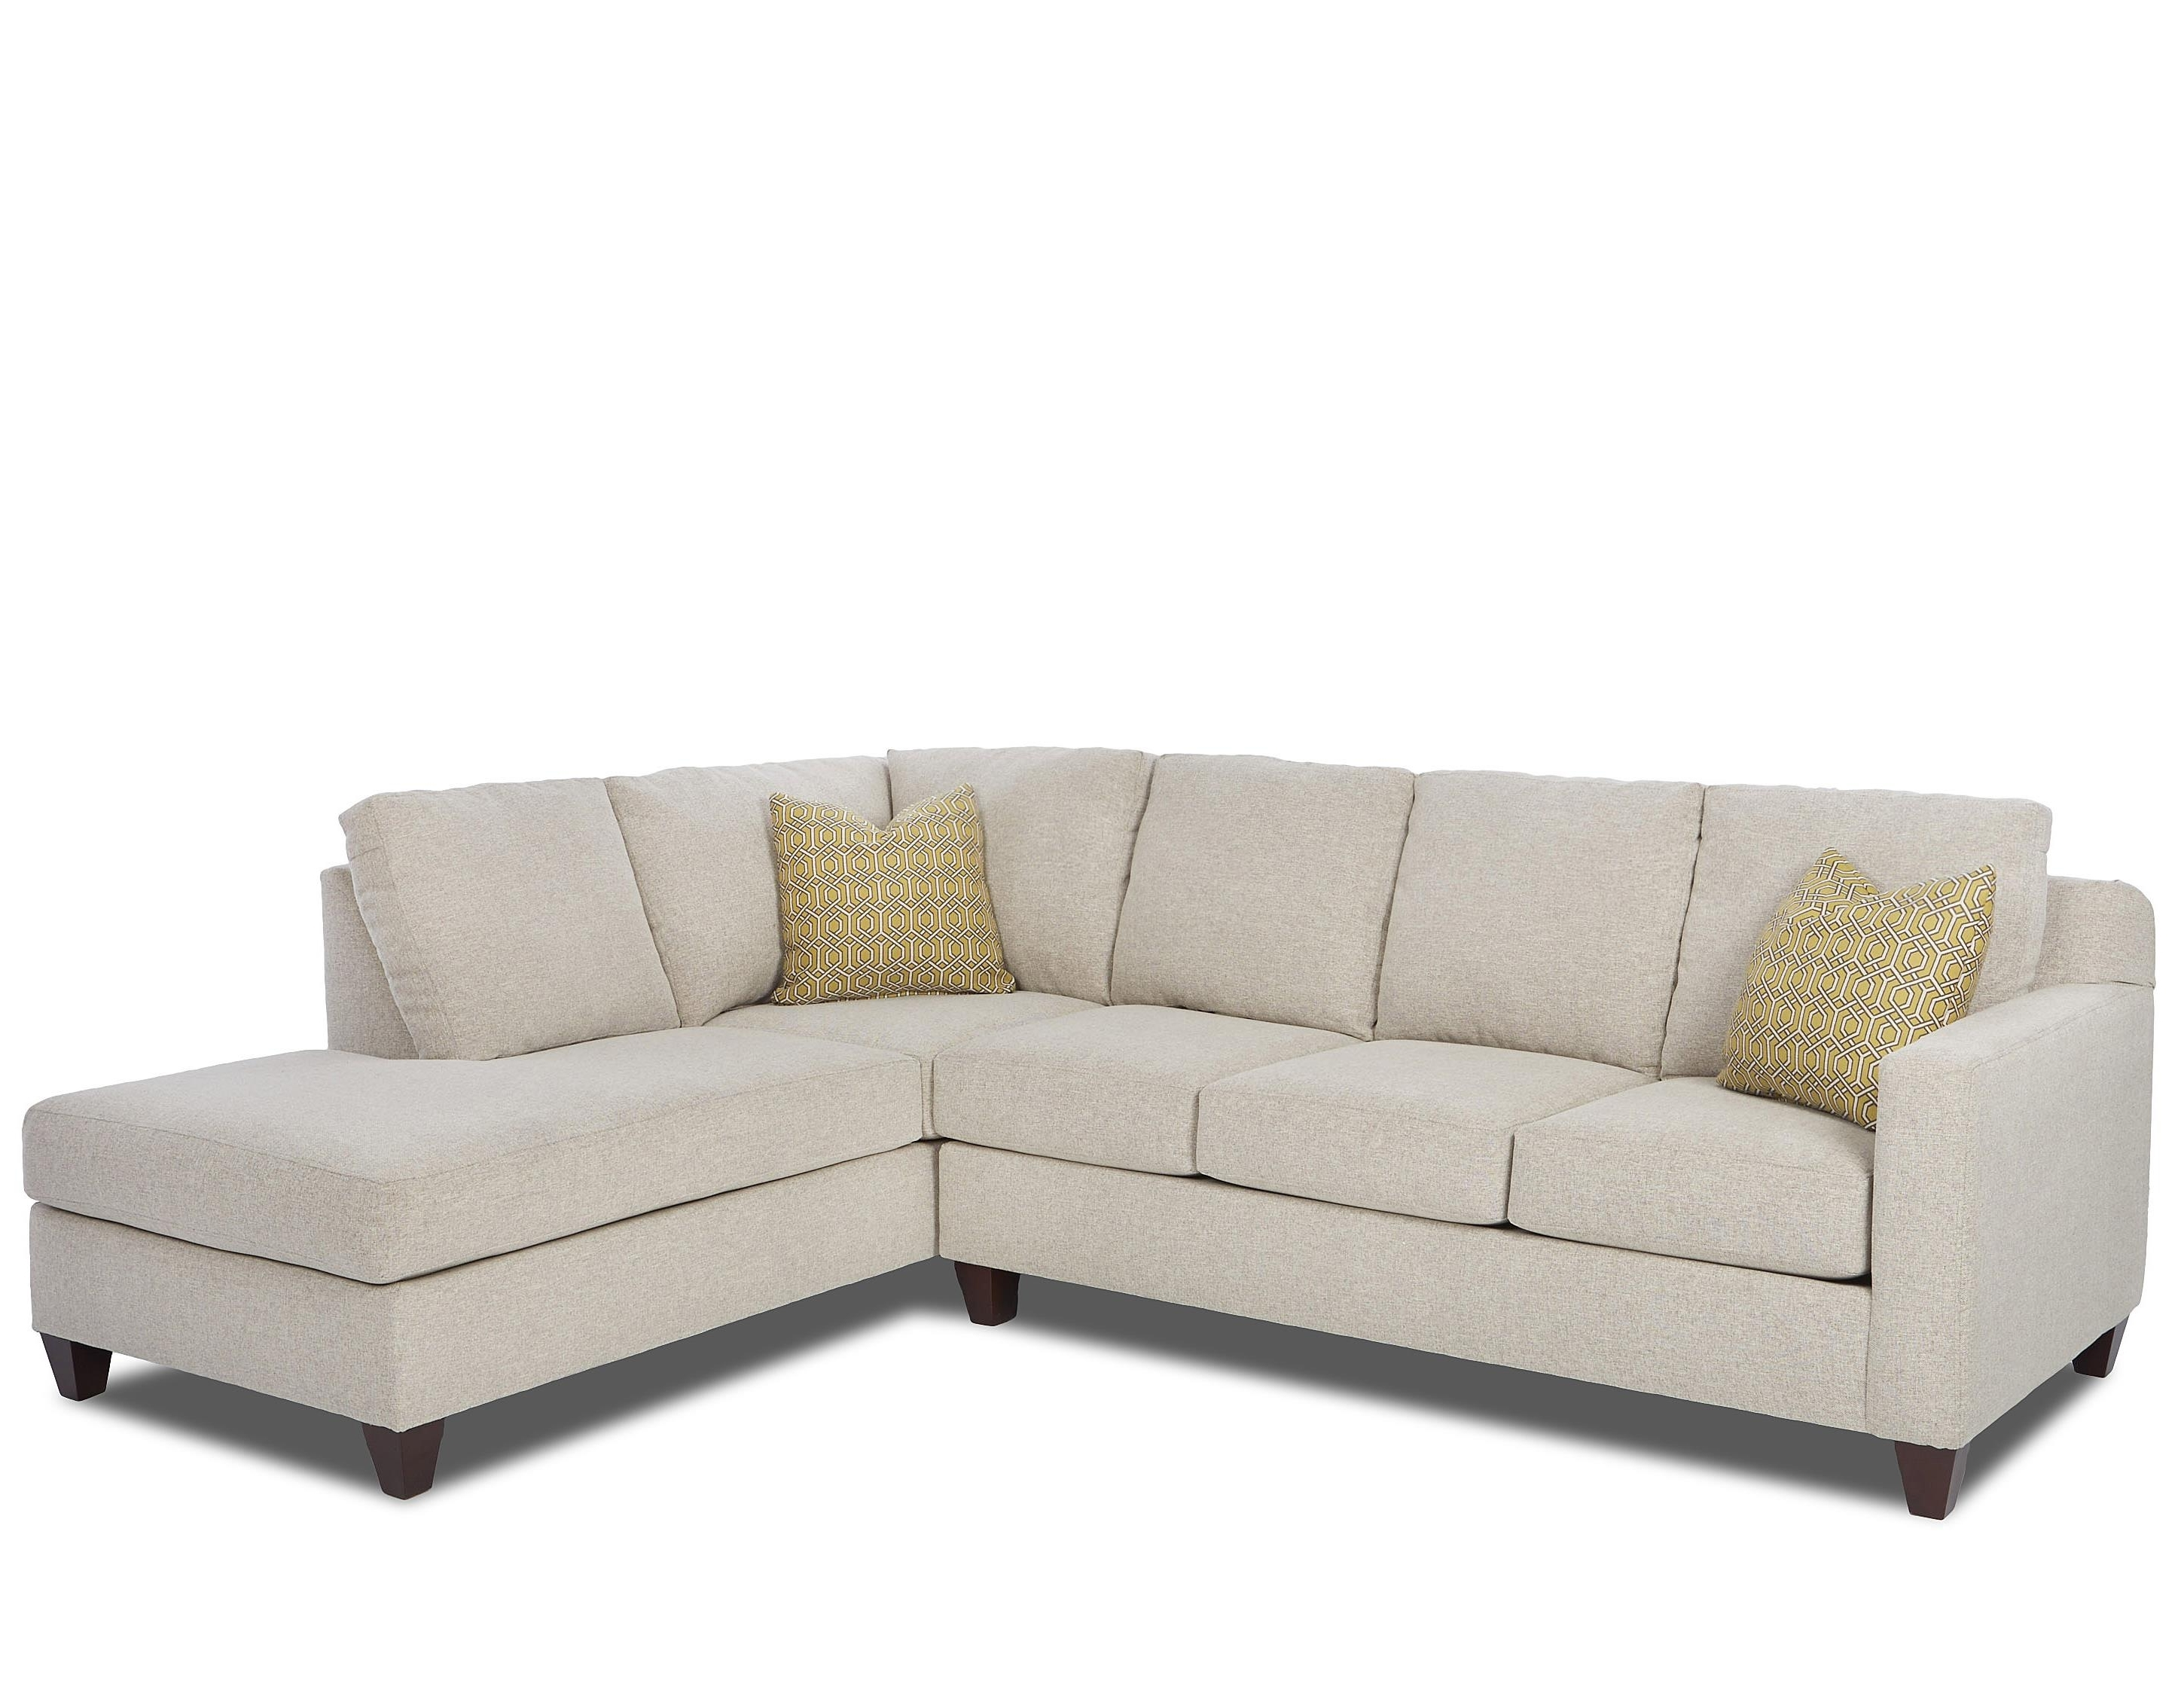 sectional studio left and chaise contemporary radford right grey facing piece sofa leather modern dark baxton